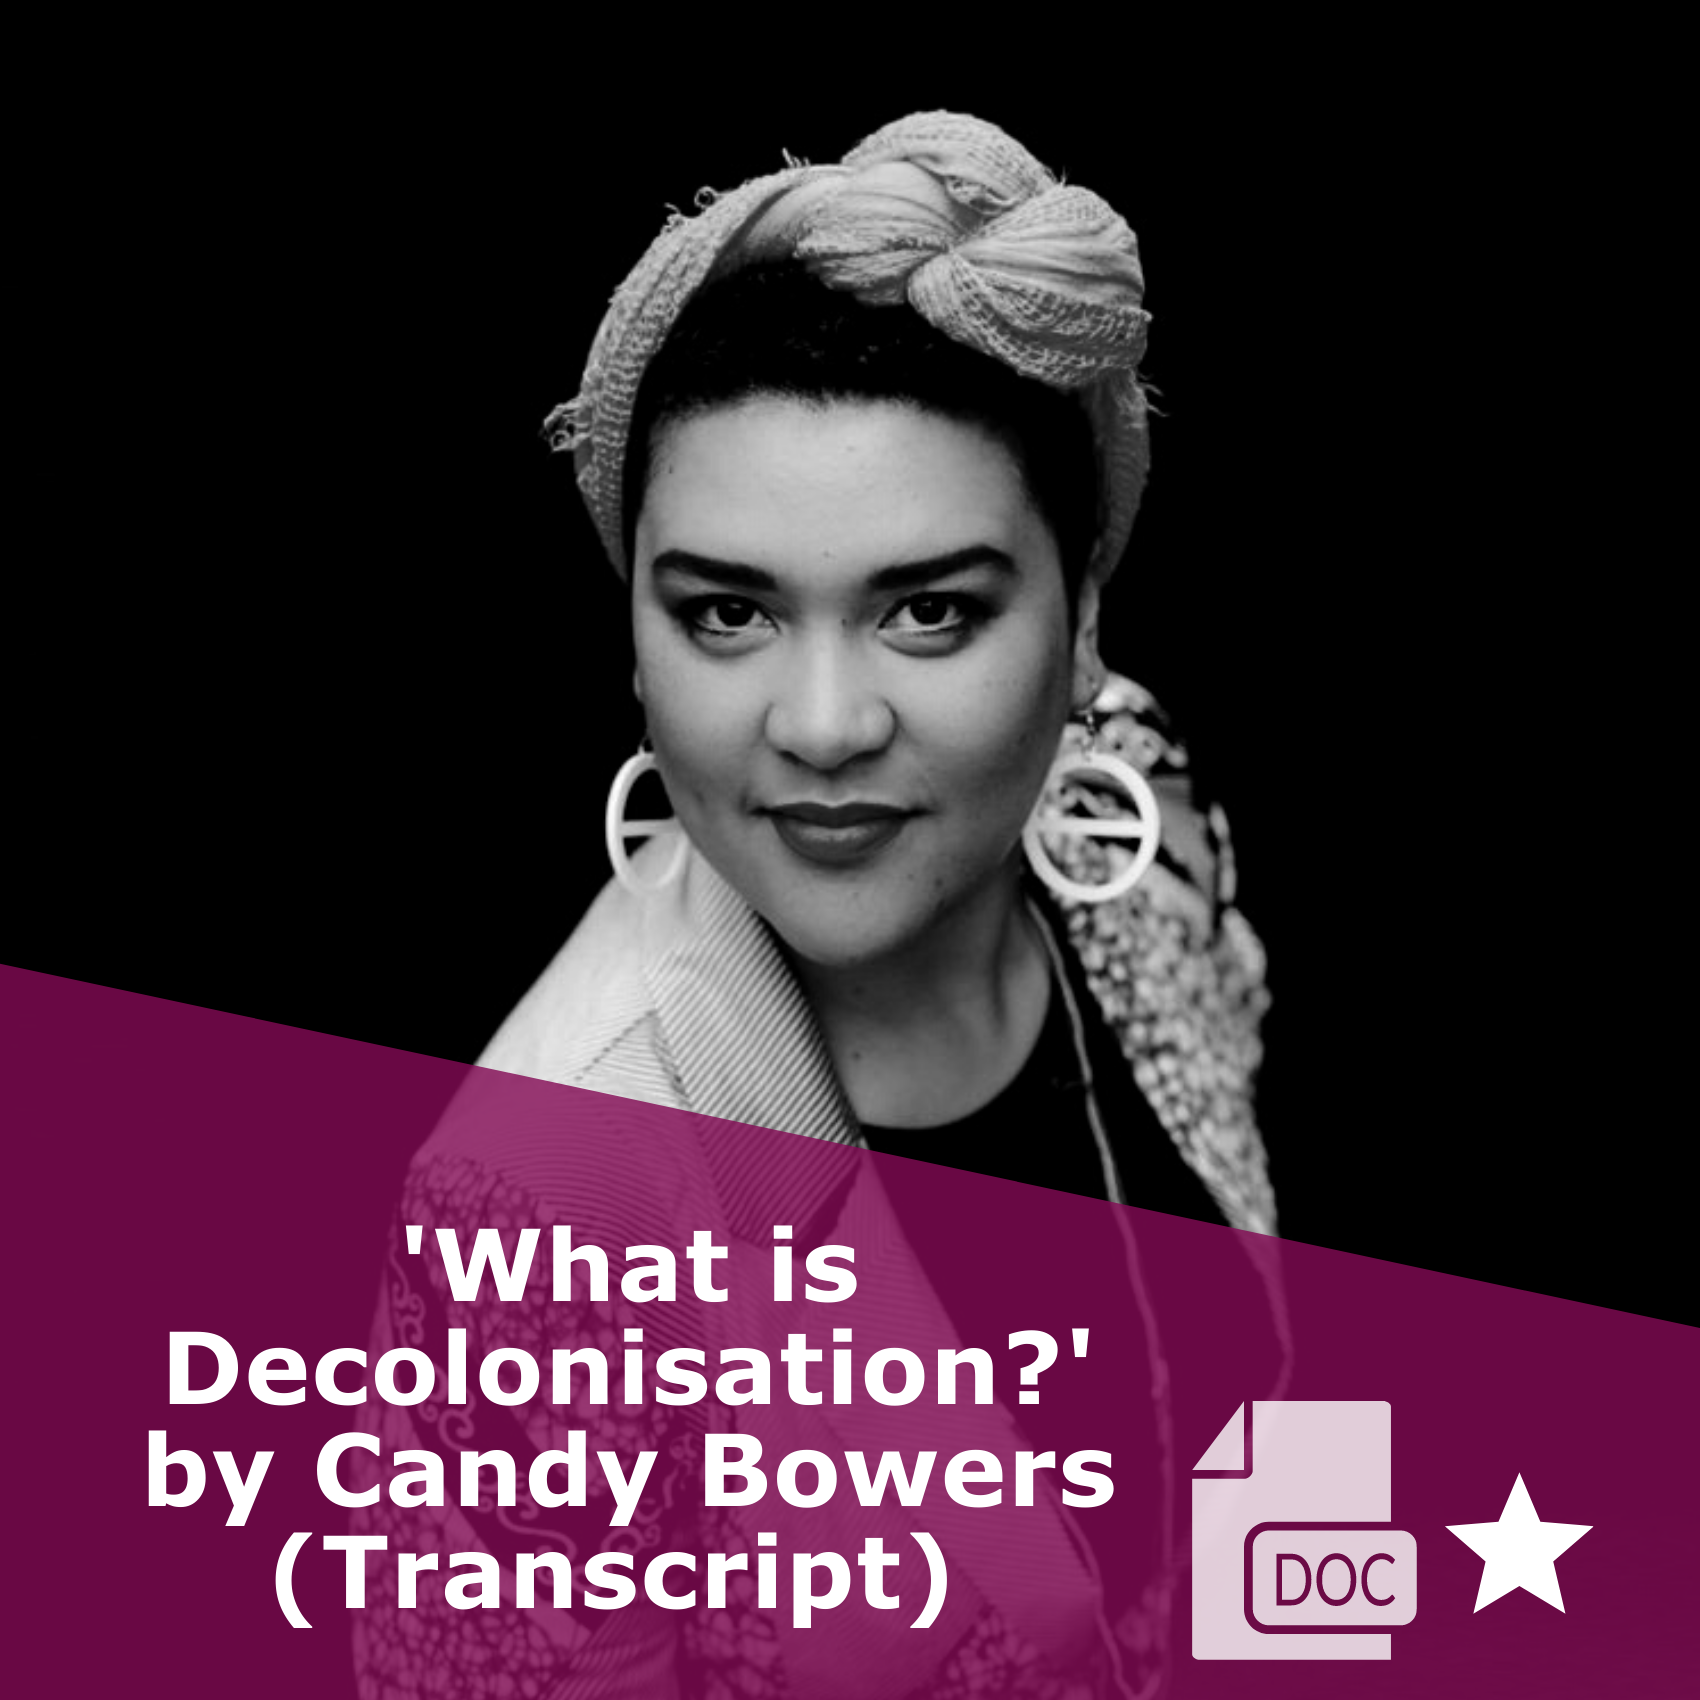 Picture in black and white of Candy Bowers with the title: 'What is Decolonisation?' by Candy Bowers. It is a link to a video, and it's rated one star.